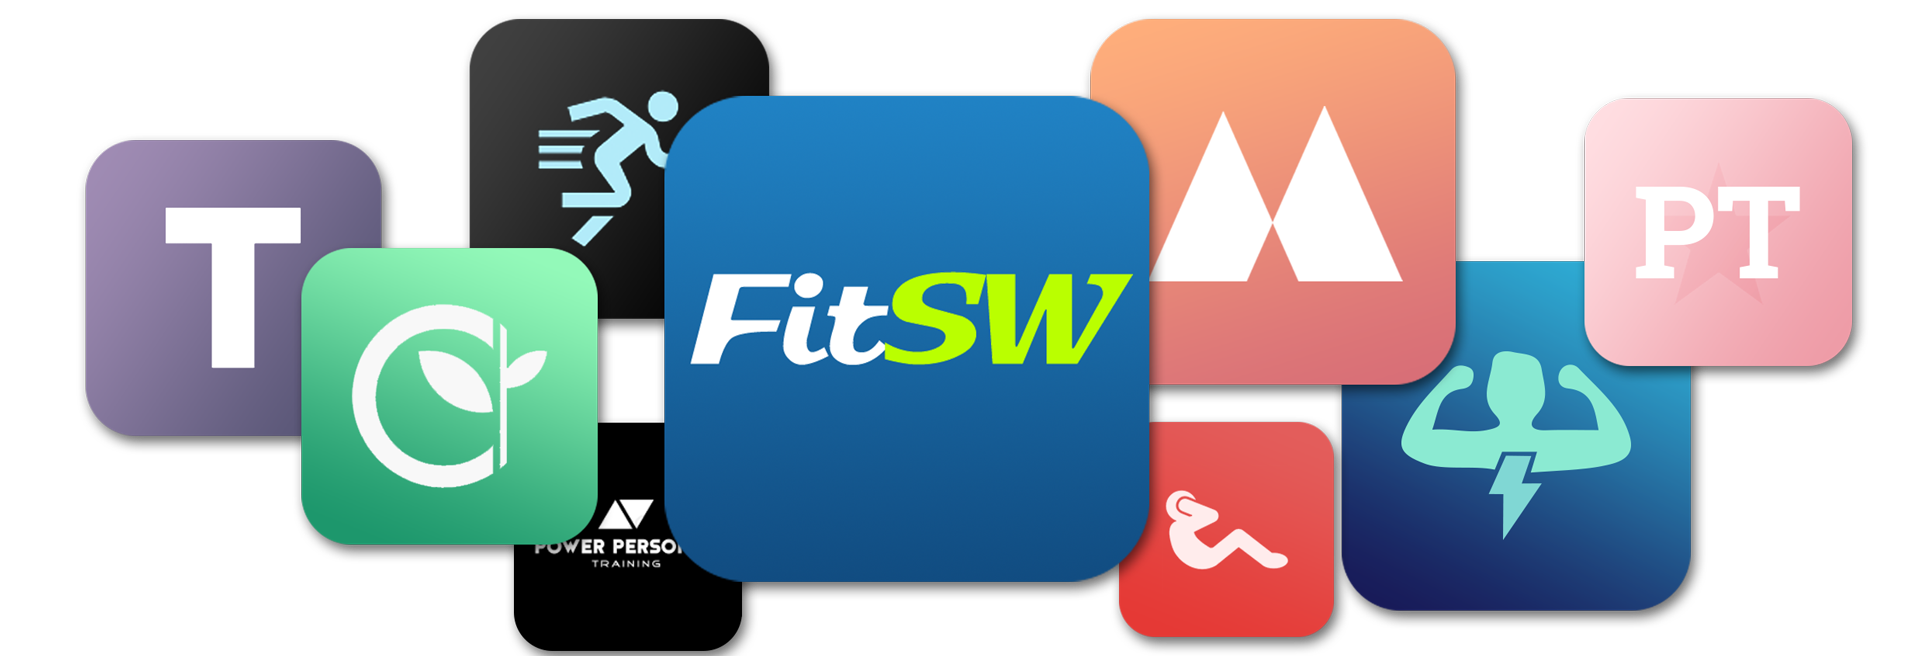 Personal Trainer Software Custom Branded Fitness App Custom Logo Options for Fitness Coaching Business.